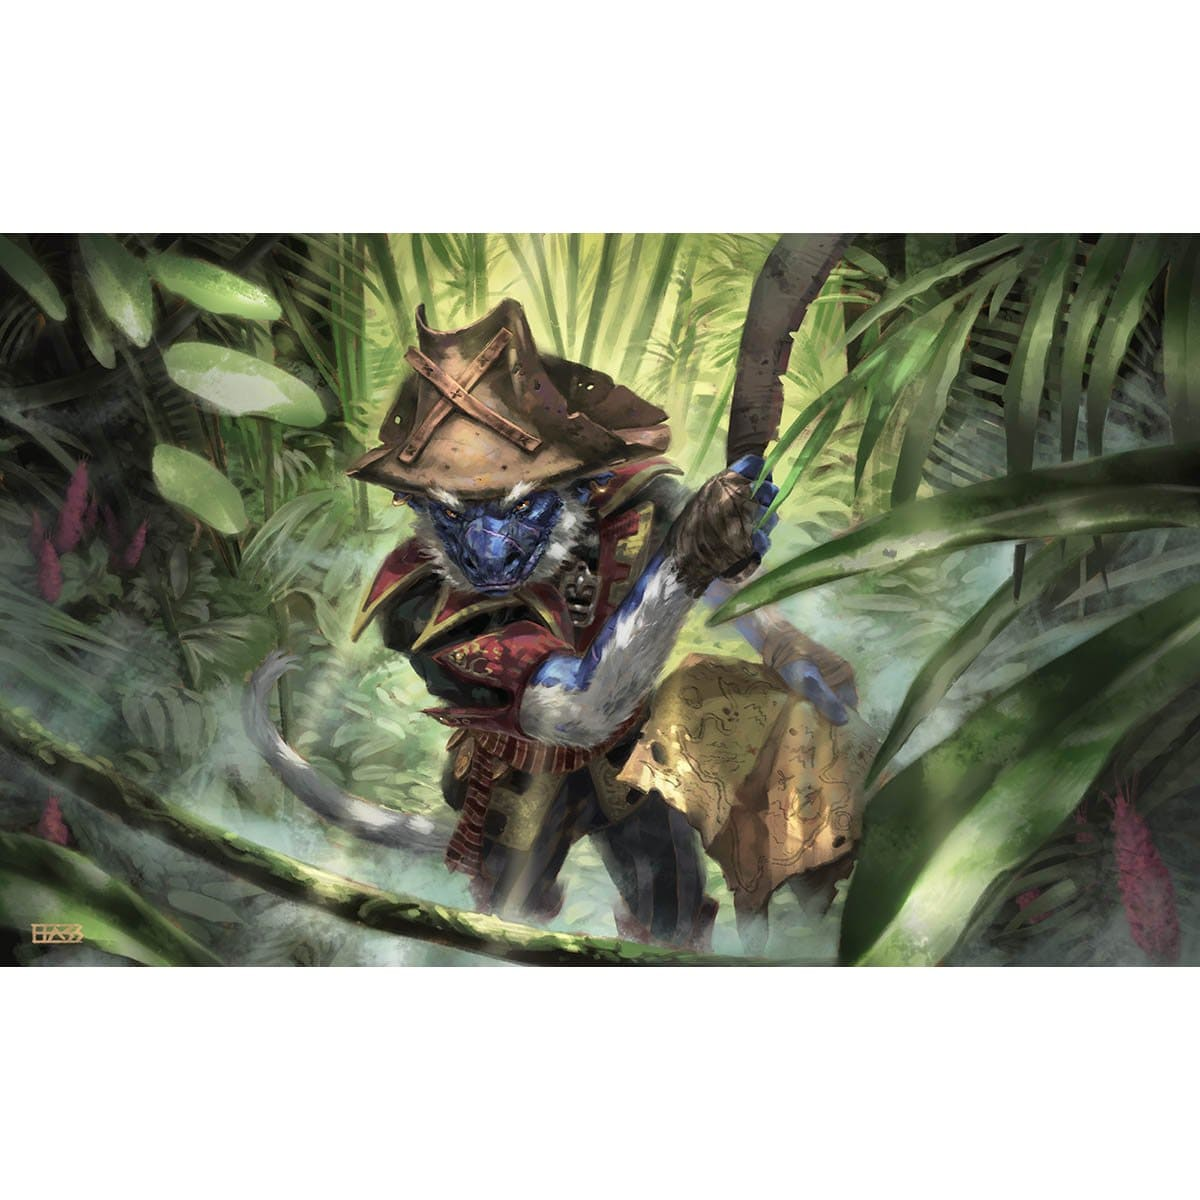 Goblin Trailblazer Print - Print - Original Magic Art - Accessories for Magic the Gathering and other card games